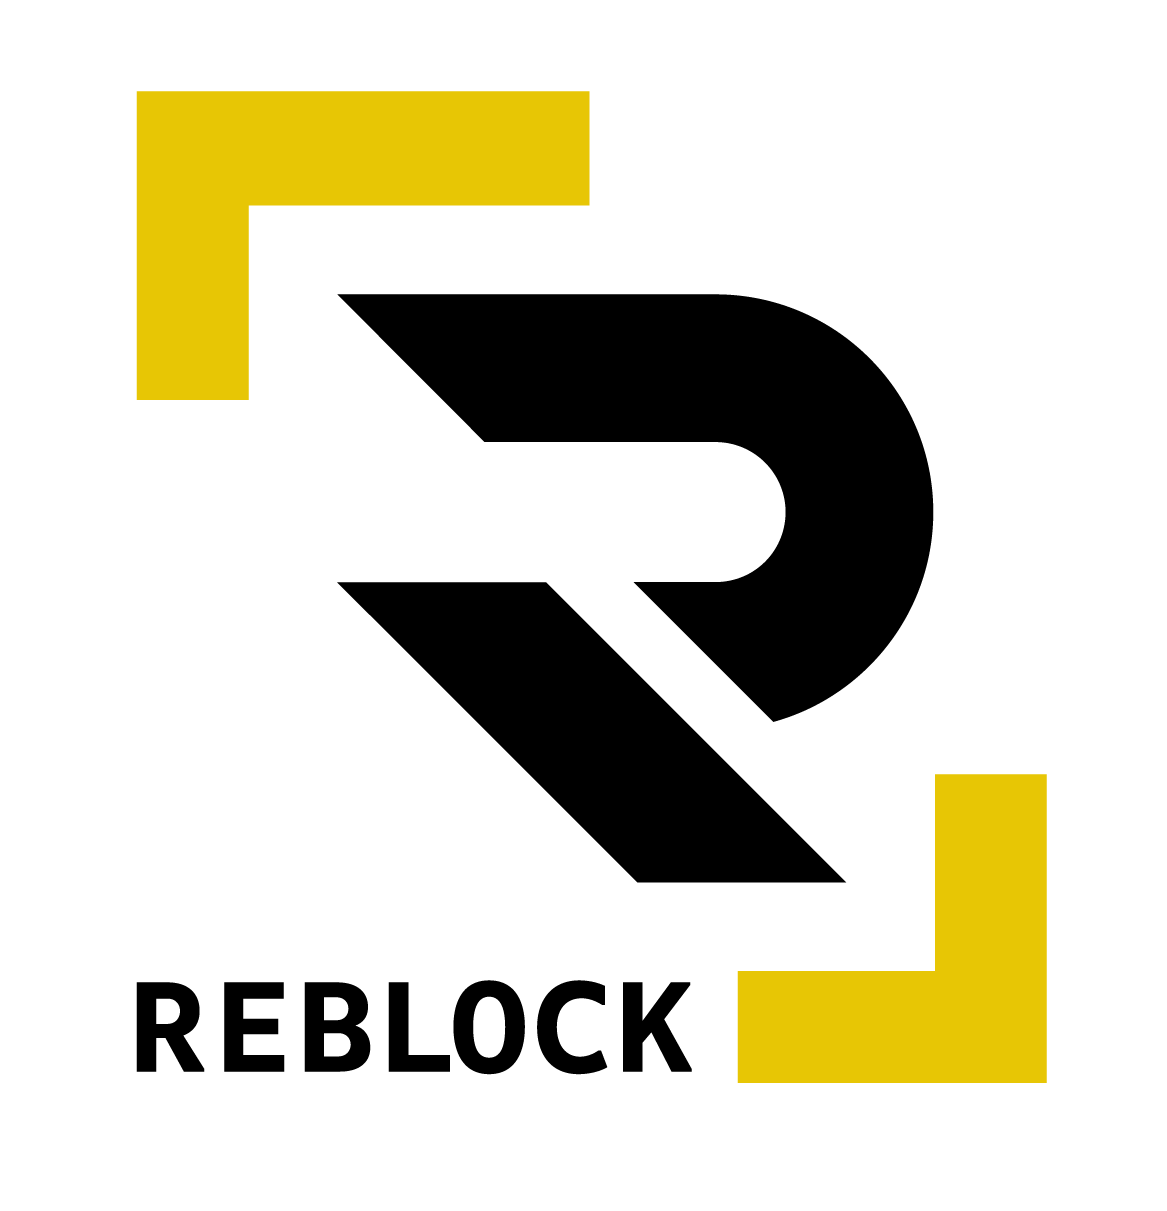 REBLOCK Holding AS